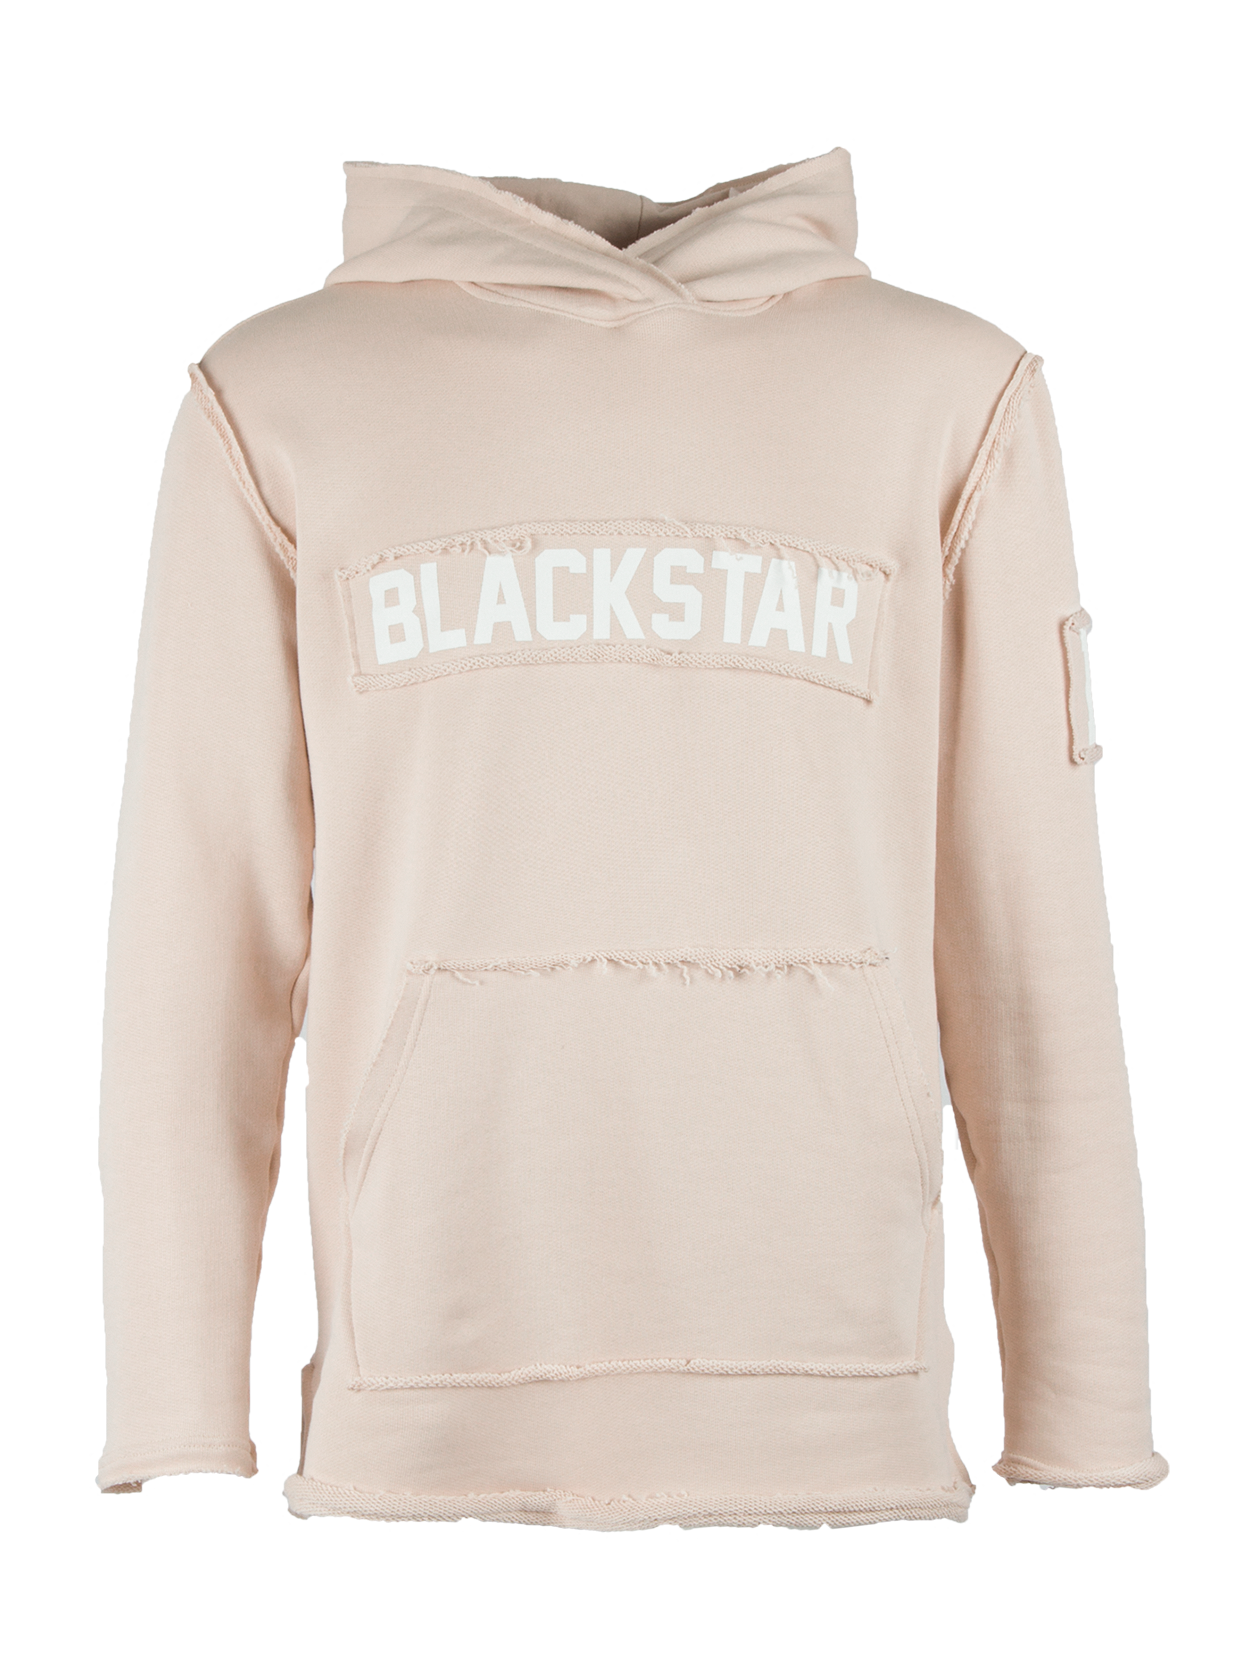 Mens hoodie BS HoodMens hoodie by Black Star Wear. Straight fit, raw cuts and seams, big hood and front pocket. Natural and soft cotton material. Patch Blackstar on the chest and 13 on the left sleeve. Avaliable in khaki.<br><br>size: XS<br>color: Beige<br>gender: male